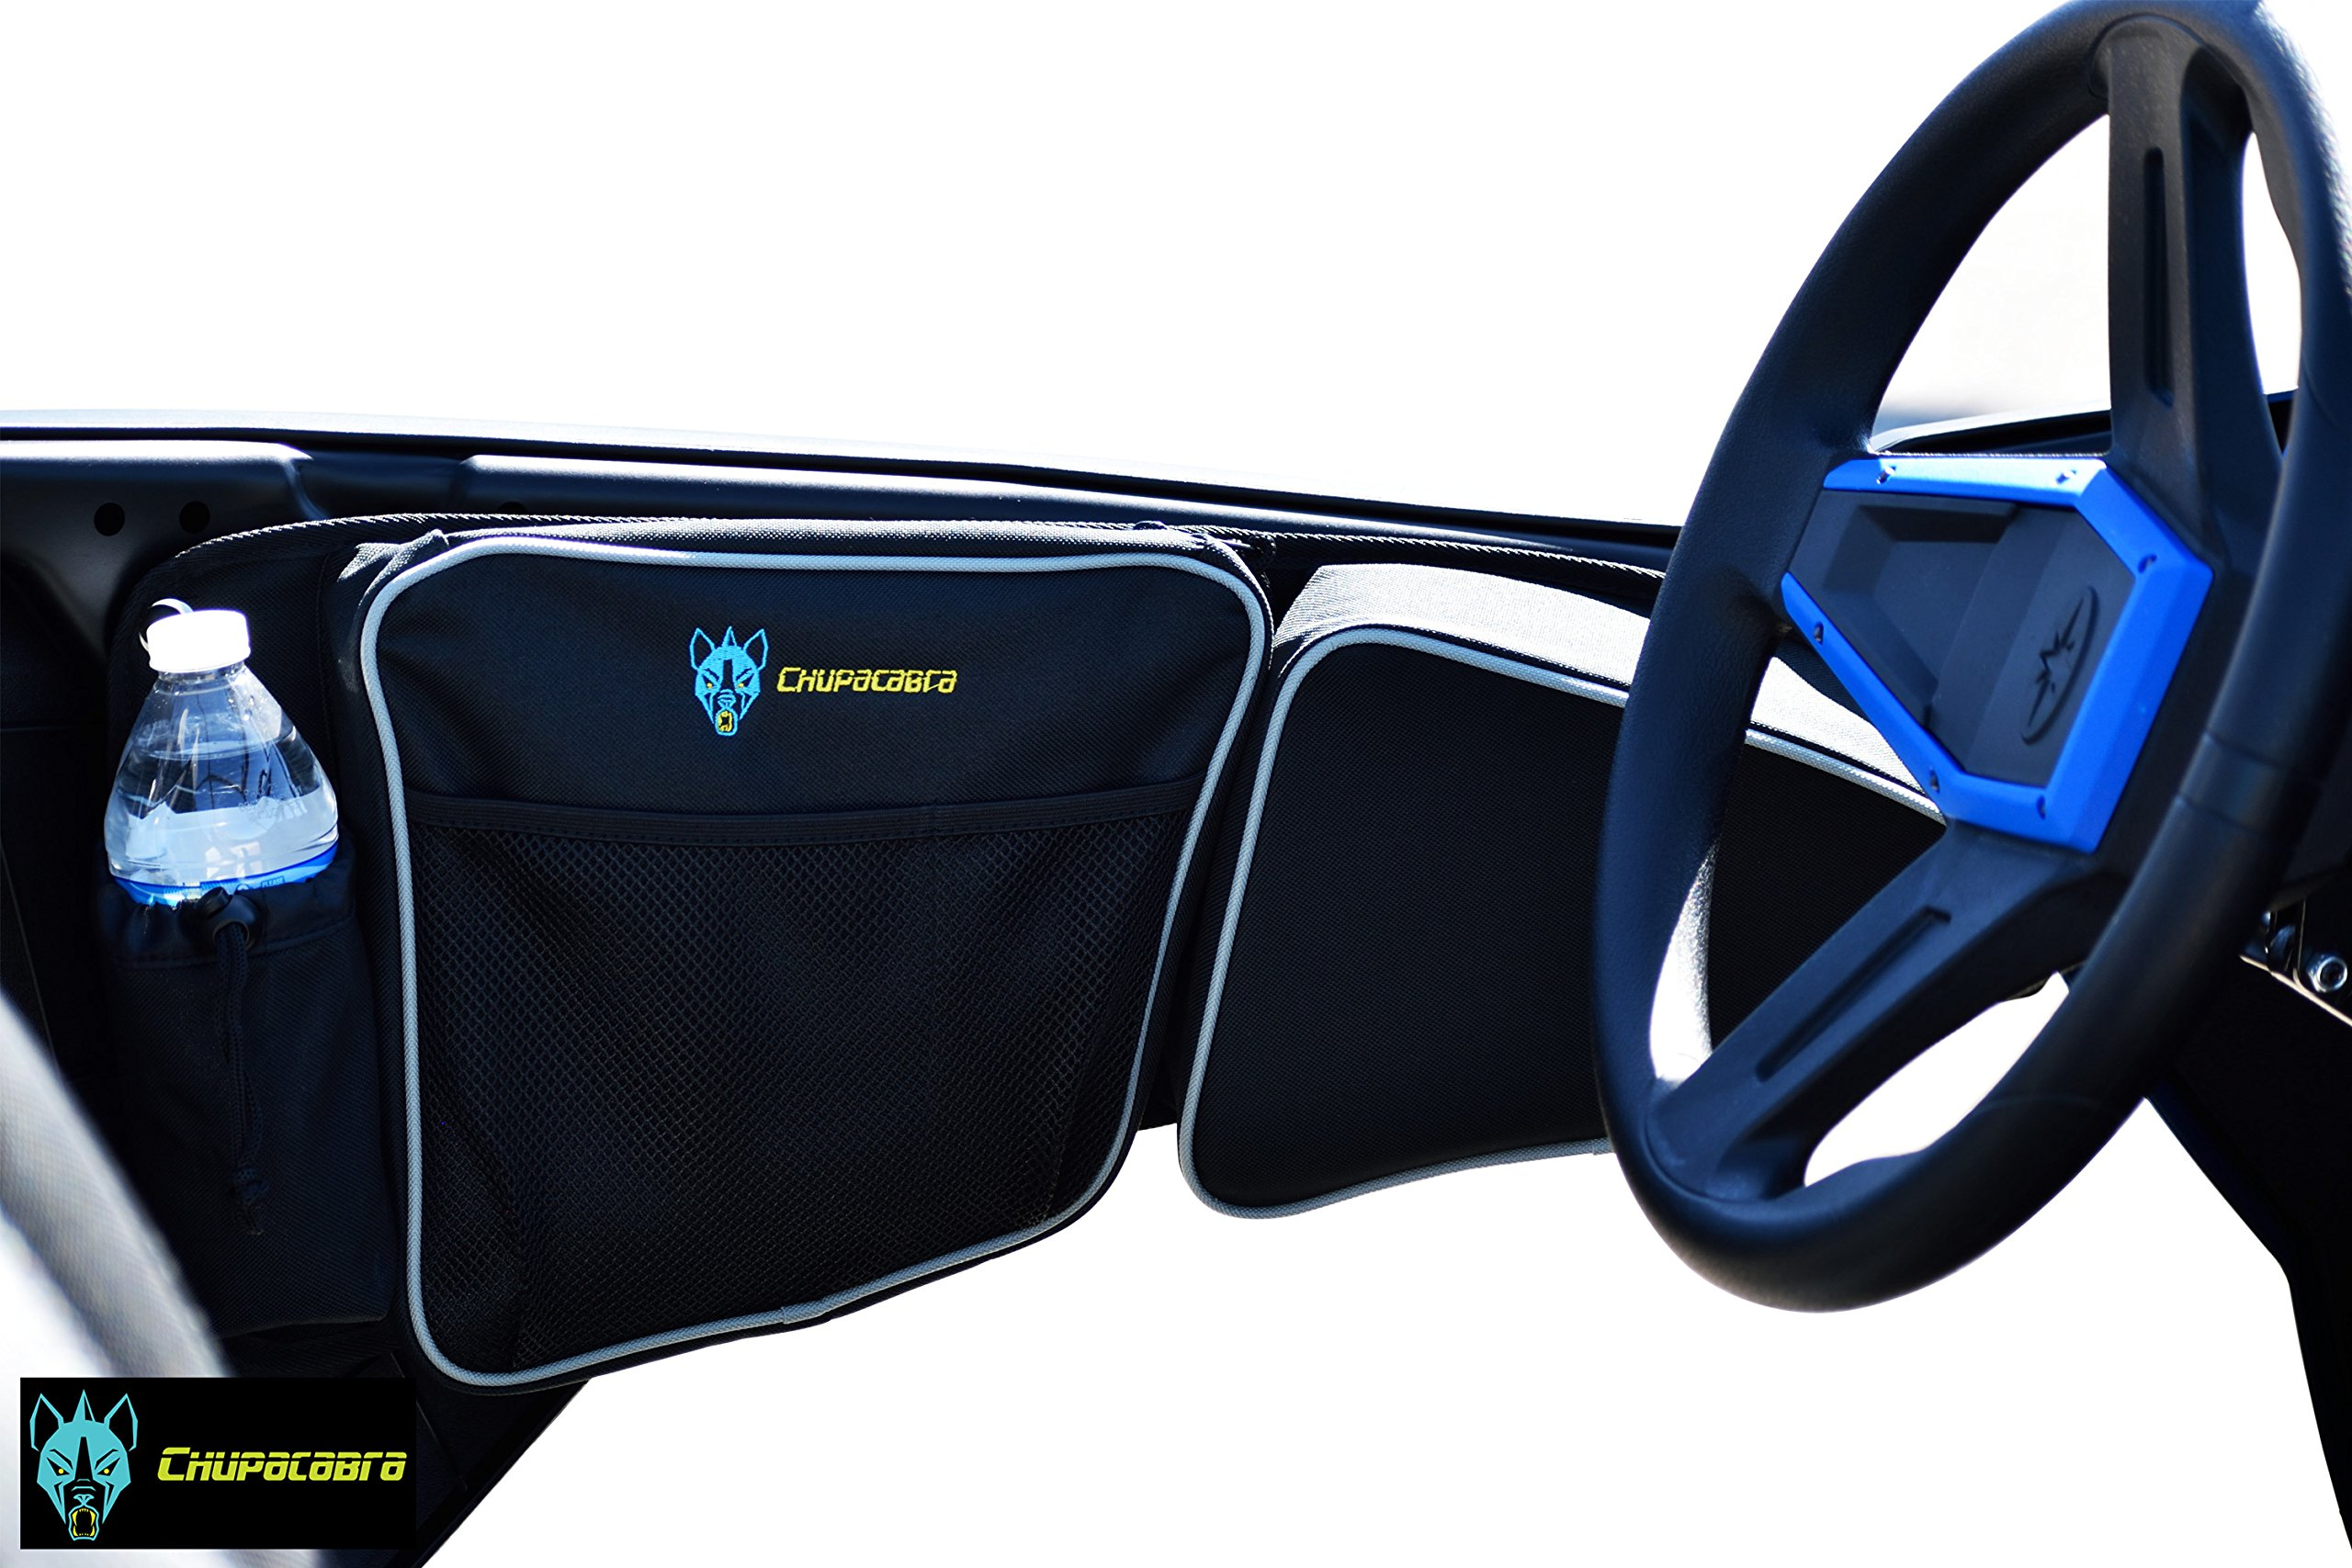 Chupacabra Offroad Door Bags RZR Turbo 1000 900S Passenger and Driver Side Storage Bag by Chupacabra Offroad (Image #1)